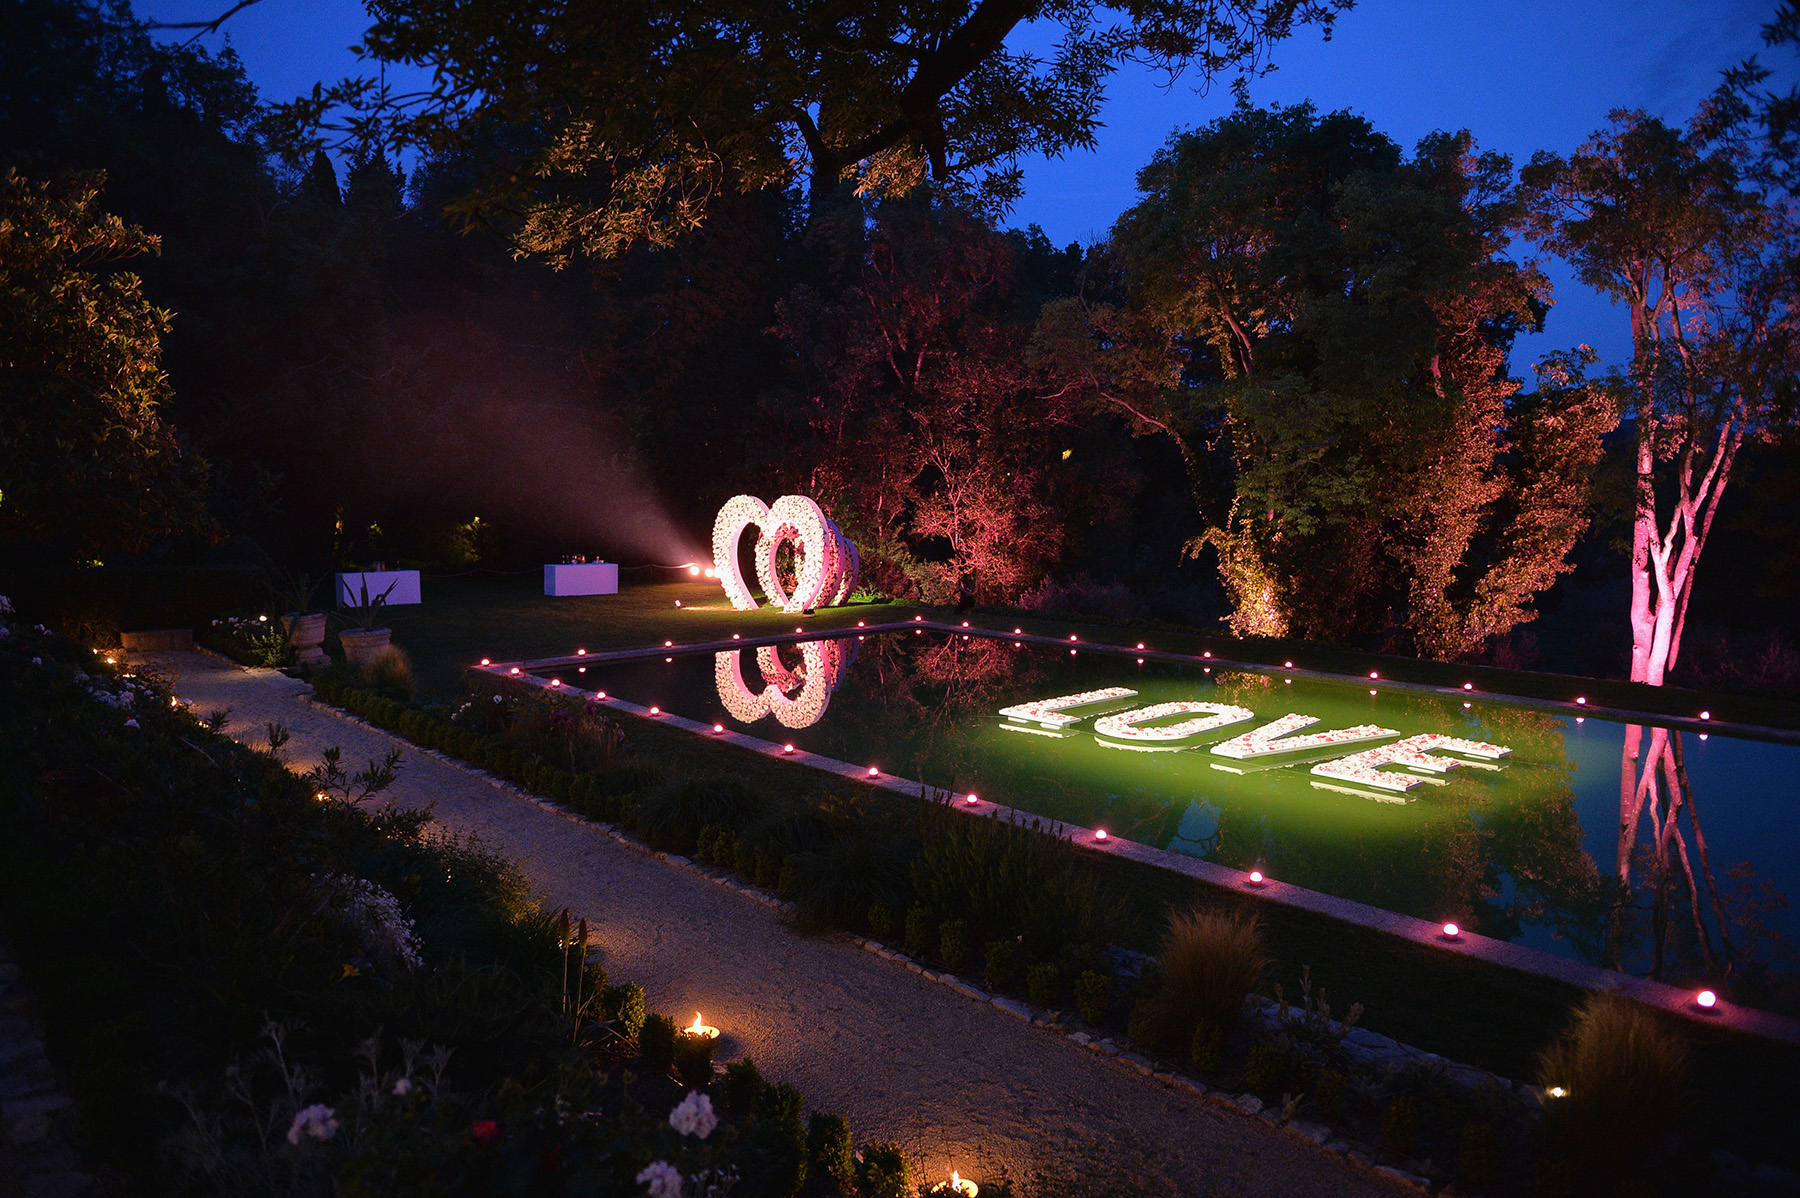 MANDELIEU-LA-NAPOULE, FRANCE - MAY 07: General atmosphere during the Dior dinner party at Chateau de La Colle Noire on May 7, 2018 in Mandelieu-la-Napoule, France. (Photo by Francois Durand/Getty Images for Parfums Christian Dior)